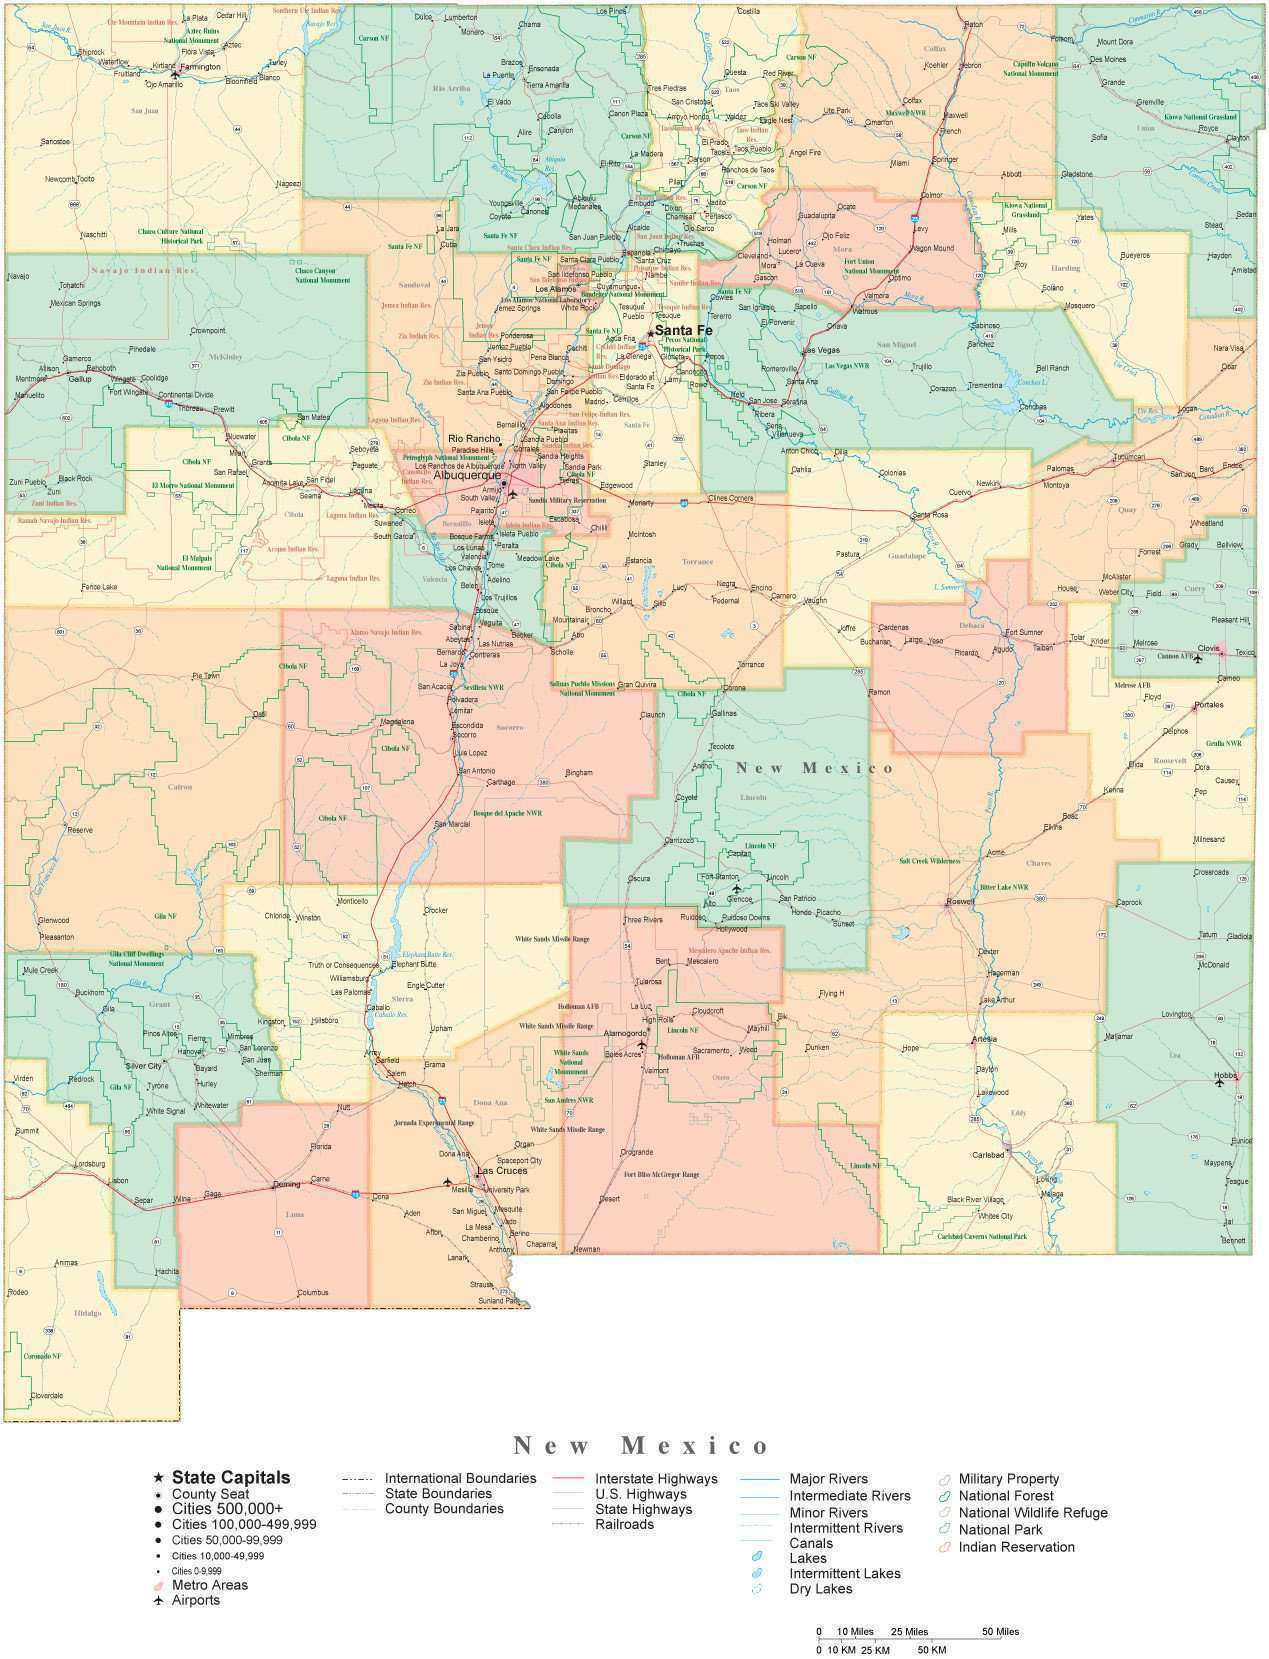 State Map Of New Mexico In Adobe Illustrator Vector Format  Map - Poster map of usa